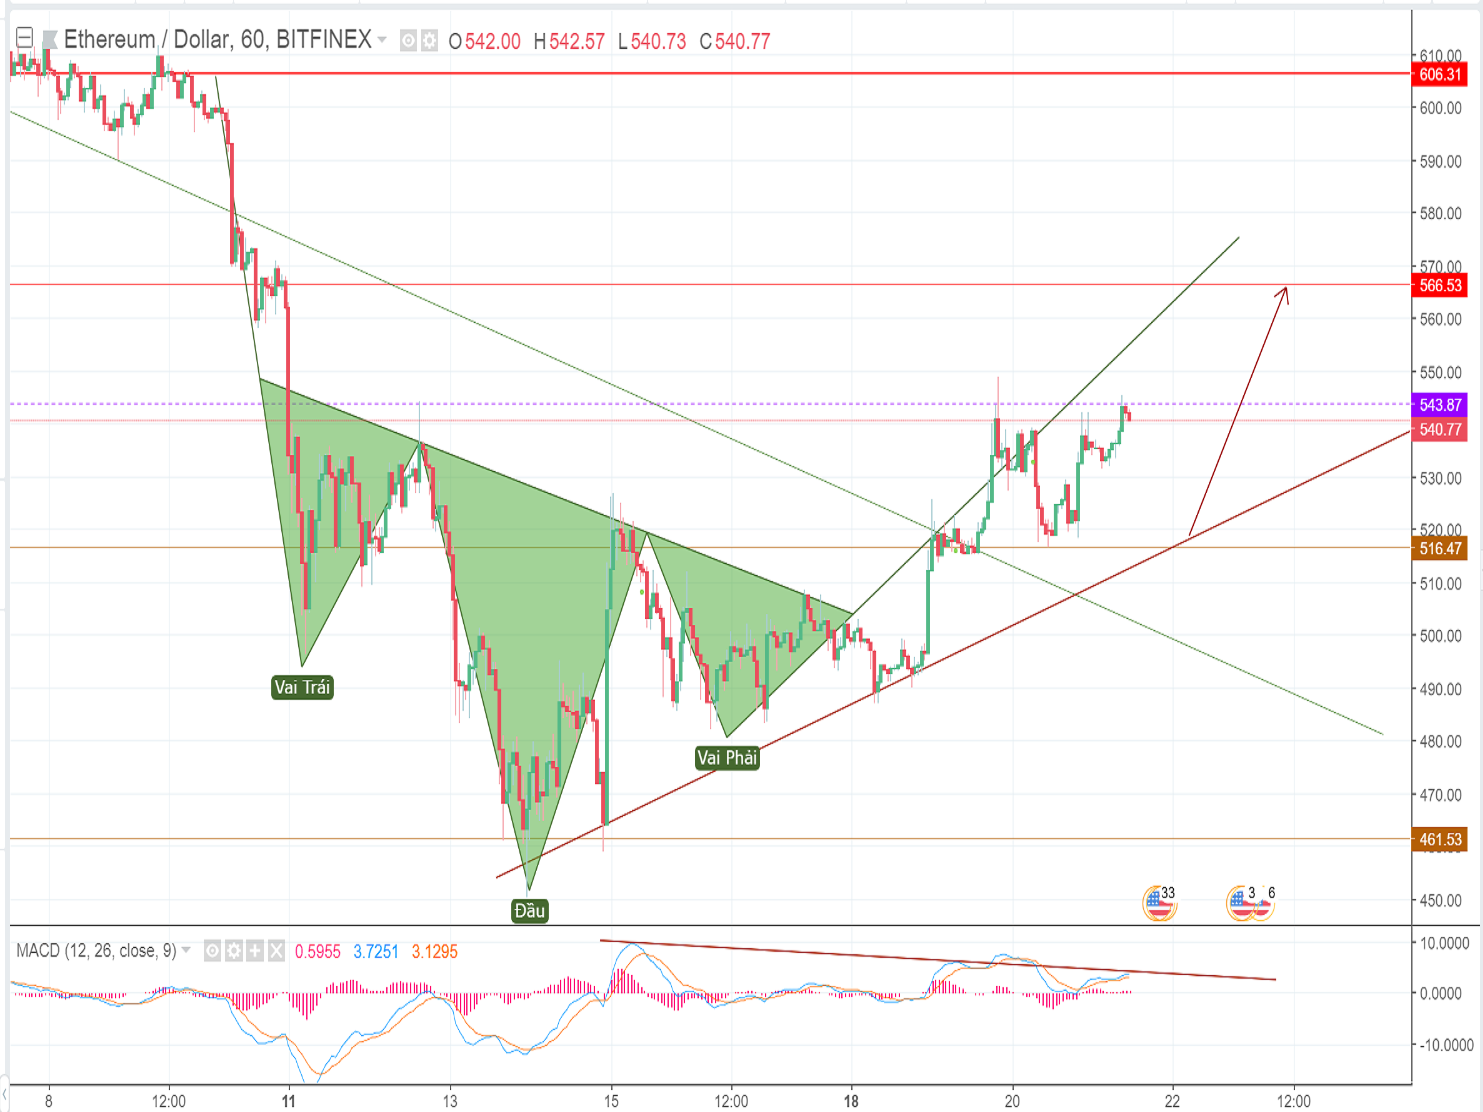 ETH price analysis and forecast on Thursday (June 21st): ETH price has been able to secure some momentum